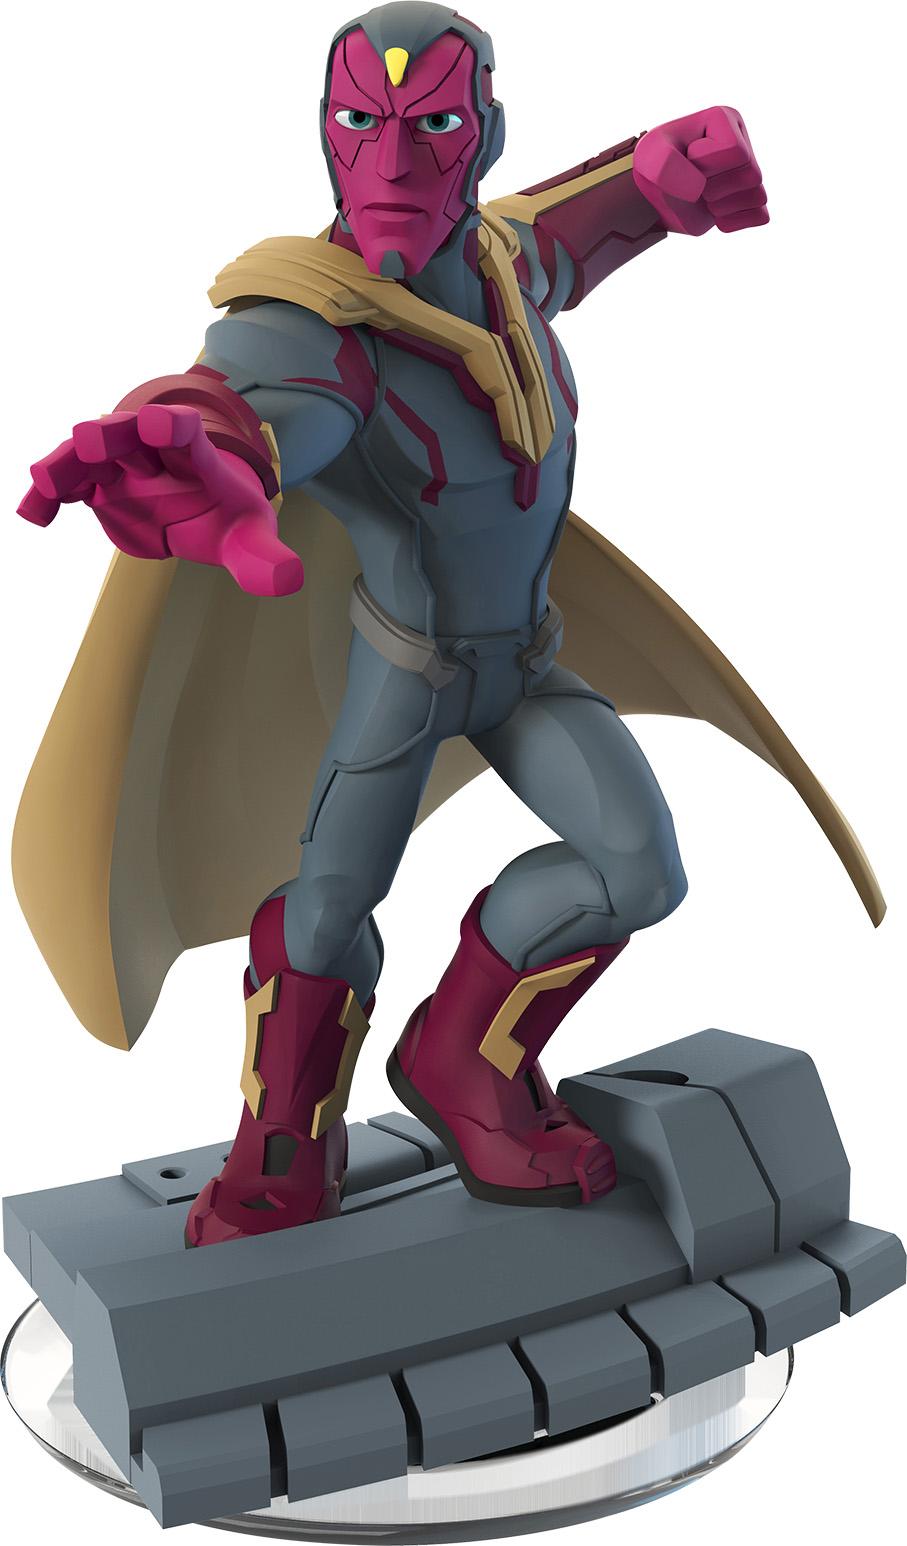 Disney Infinity 3.0 Figure: Marvel's Vision Deal